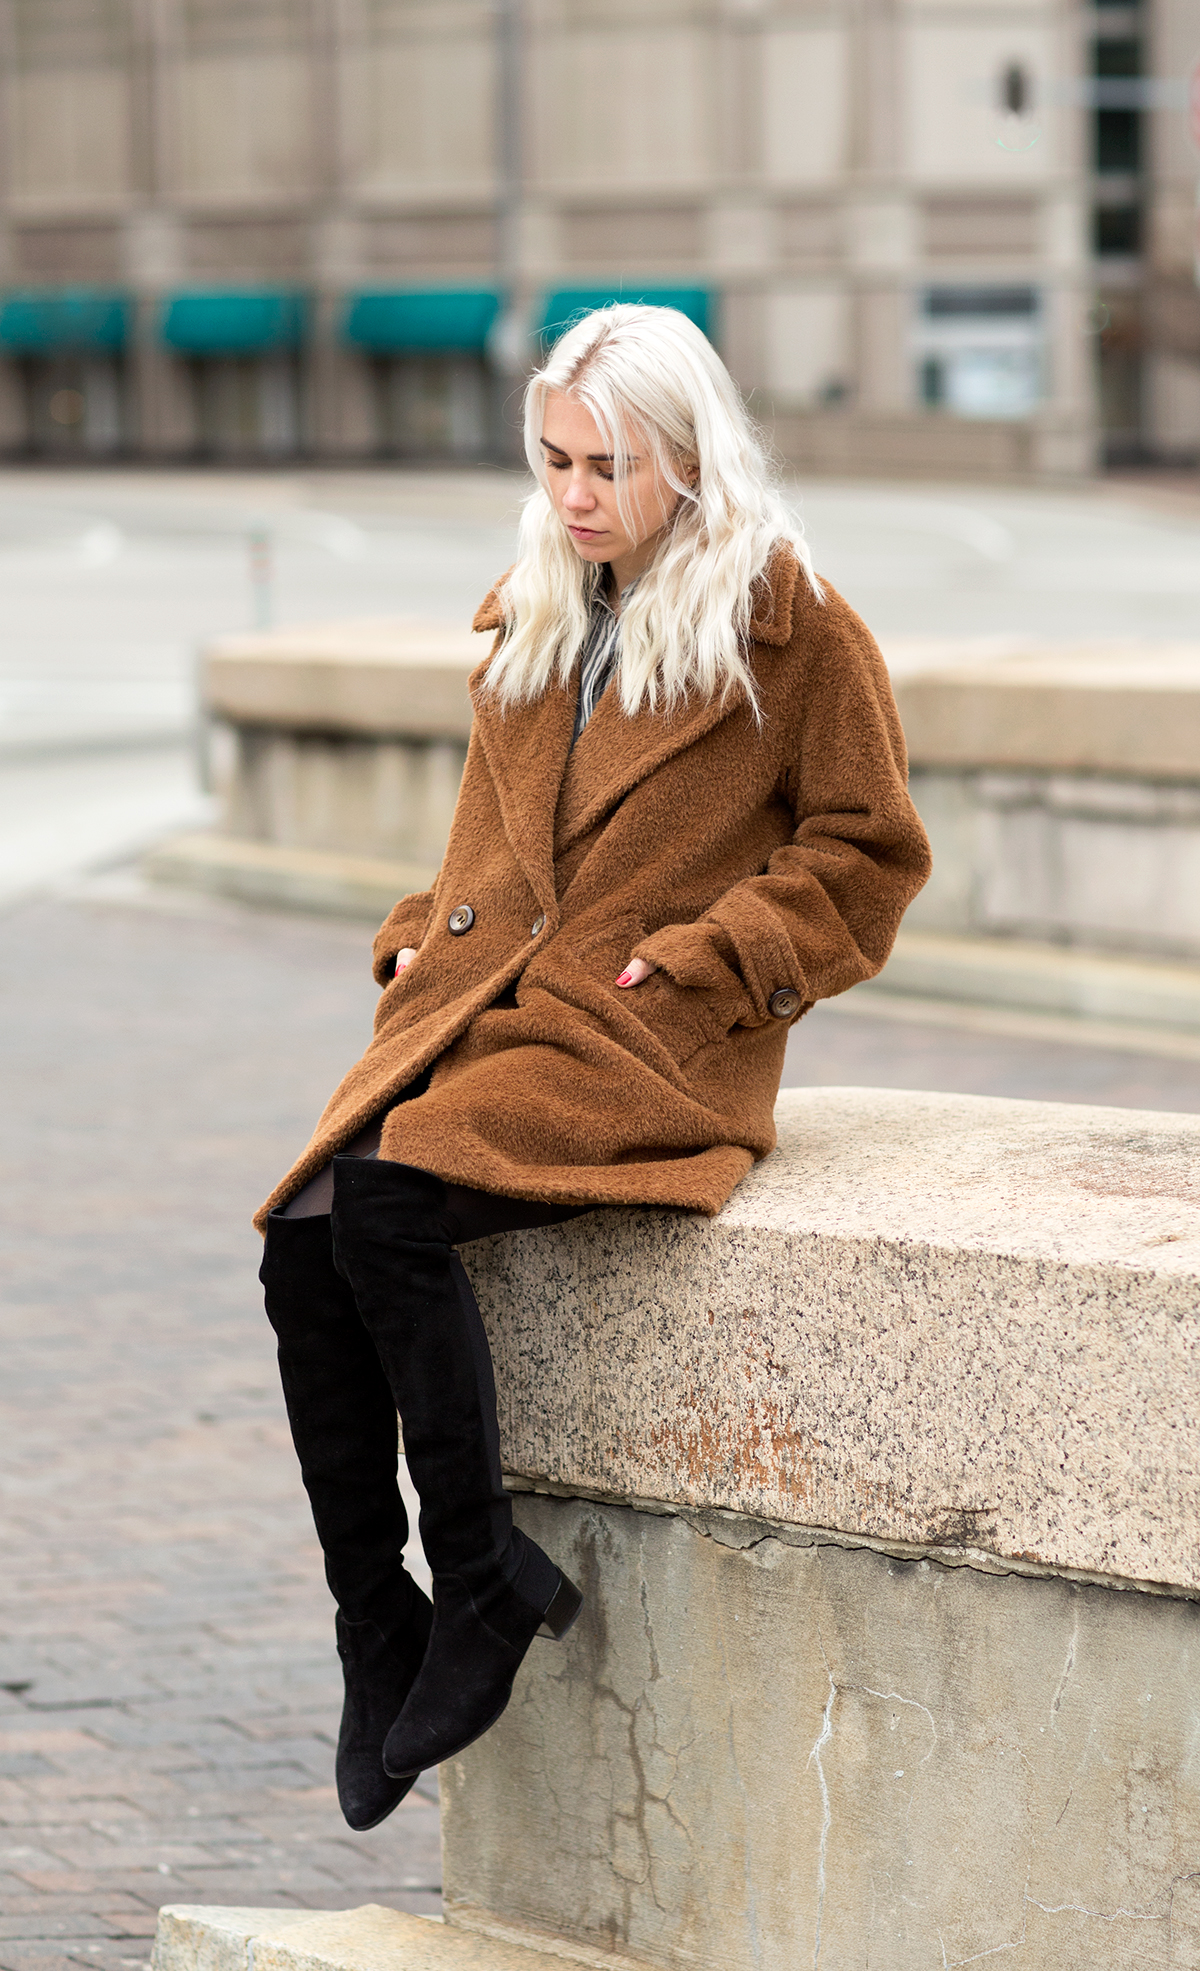 Courtney Trop is wearing a brown double breasted wool and alpaca coat from Trina Turk